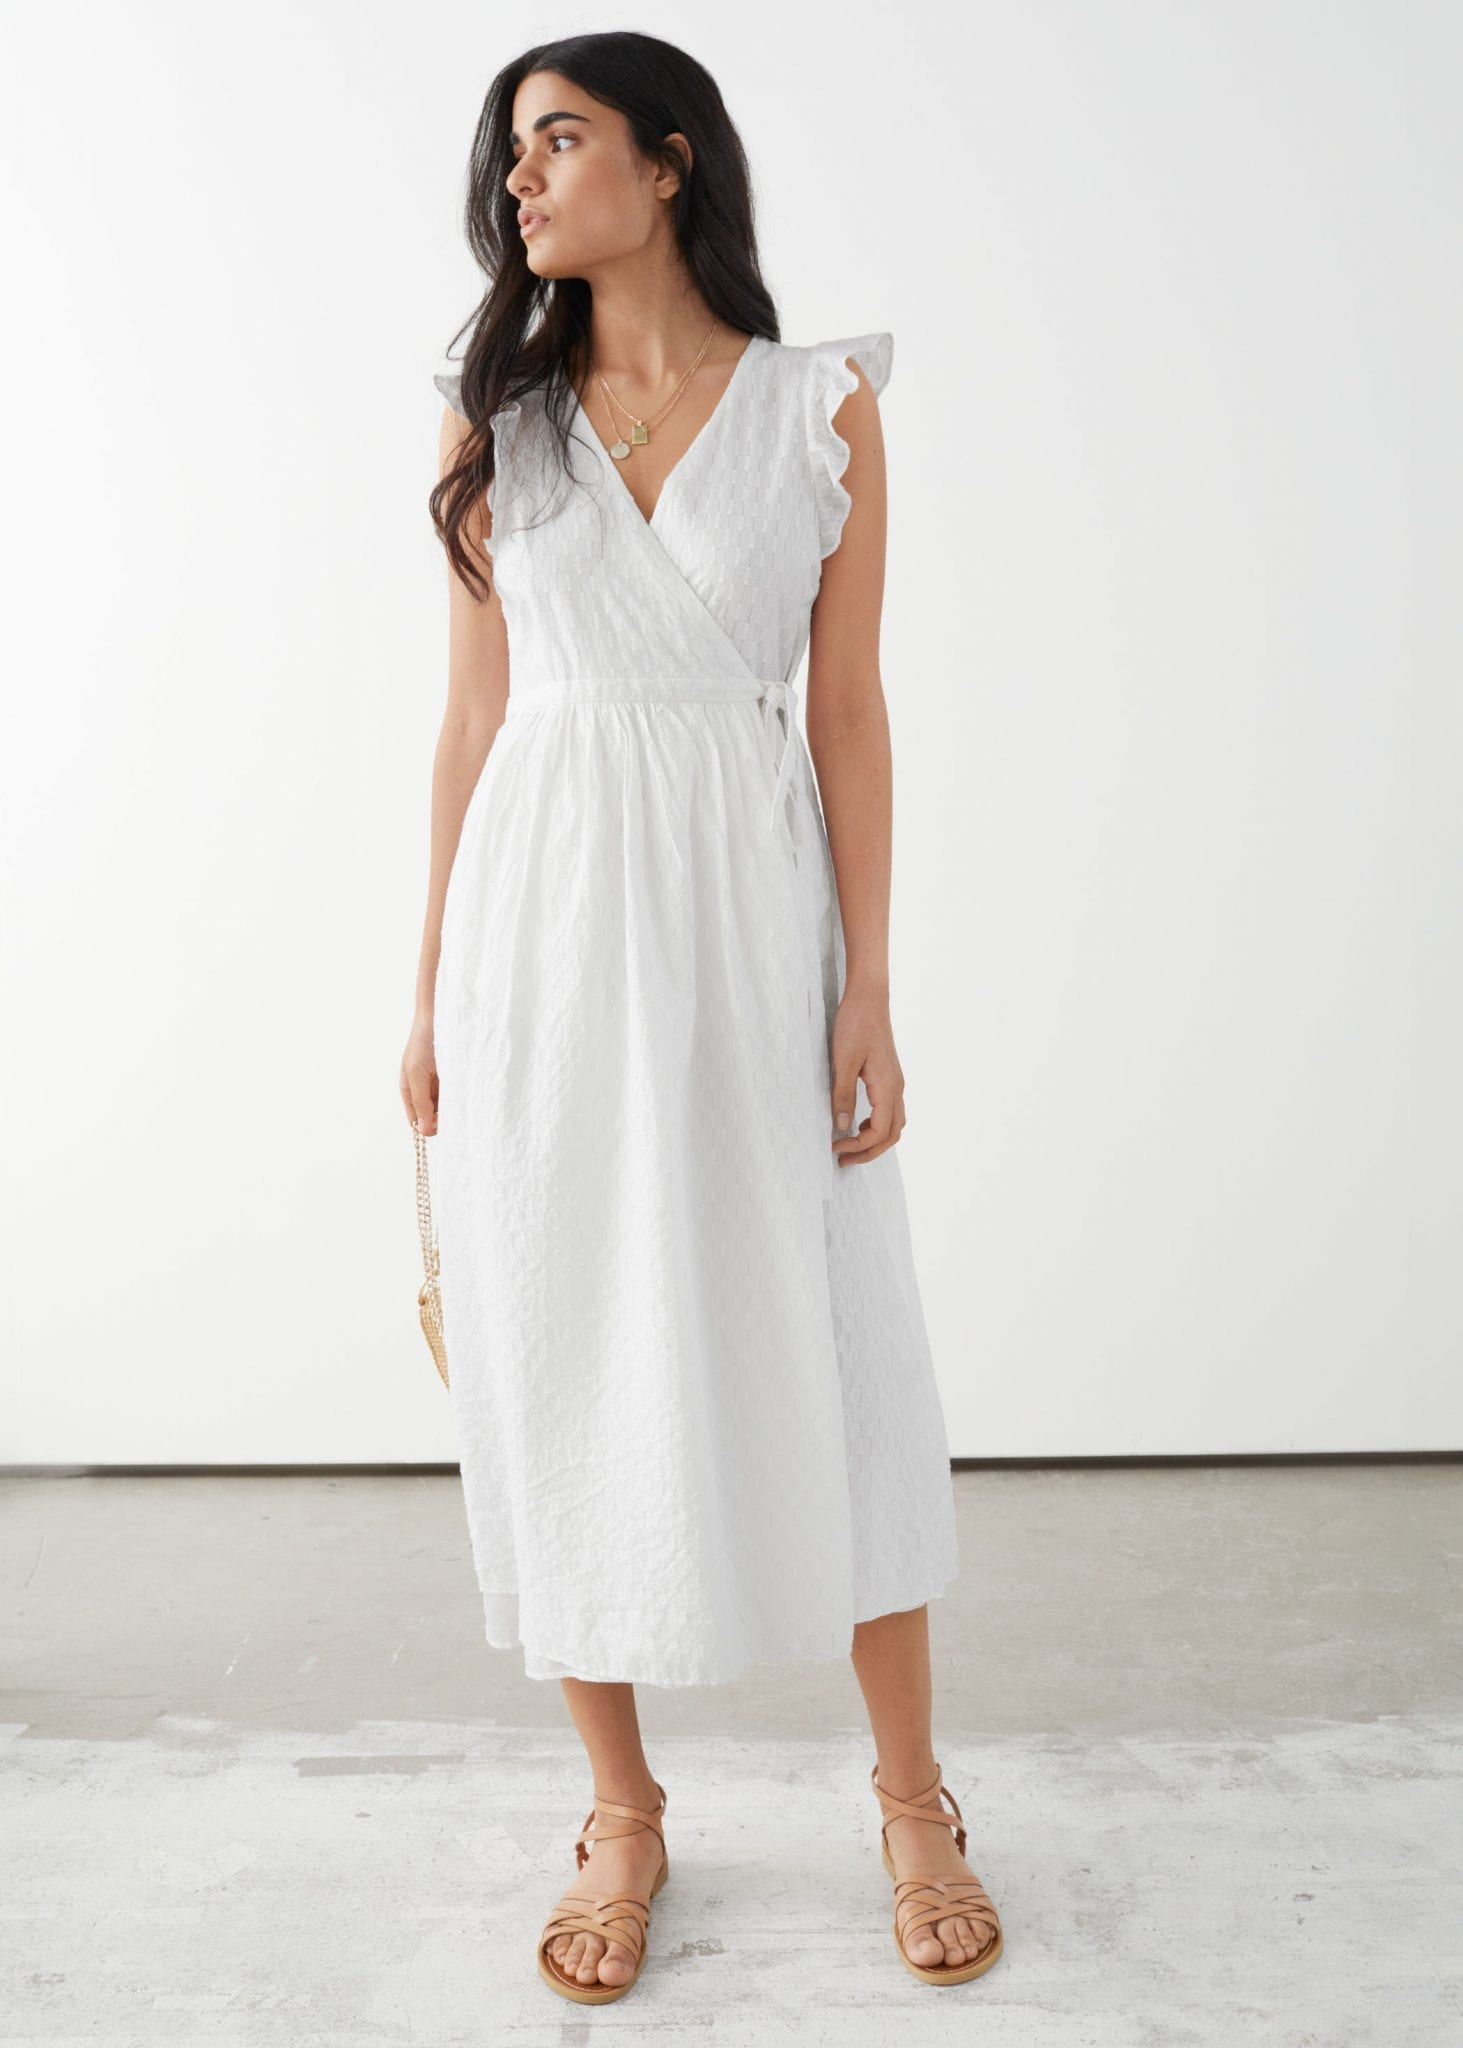 AND OTHER STORIES Ruffled Cotton Dobby Midi Dress